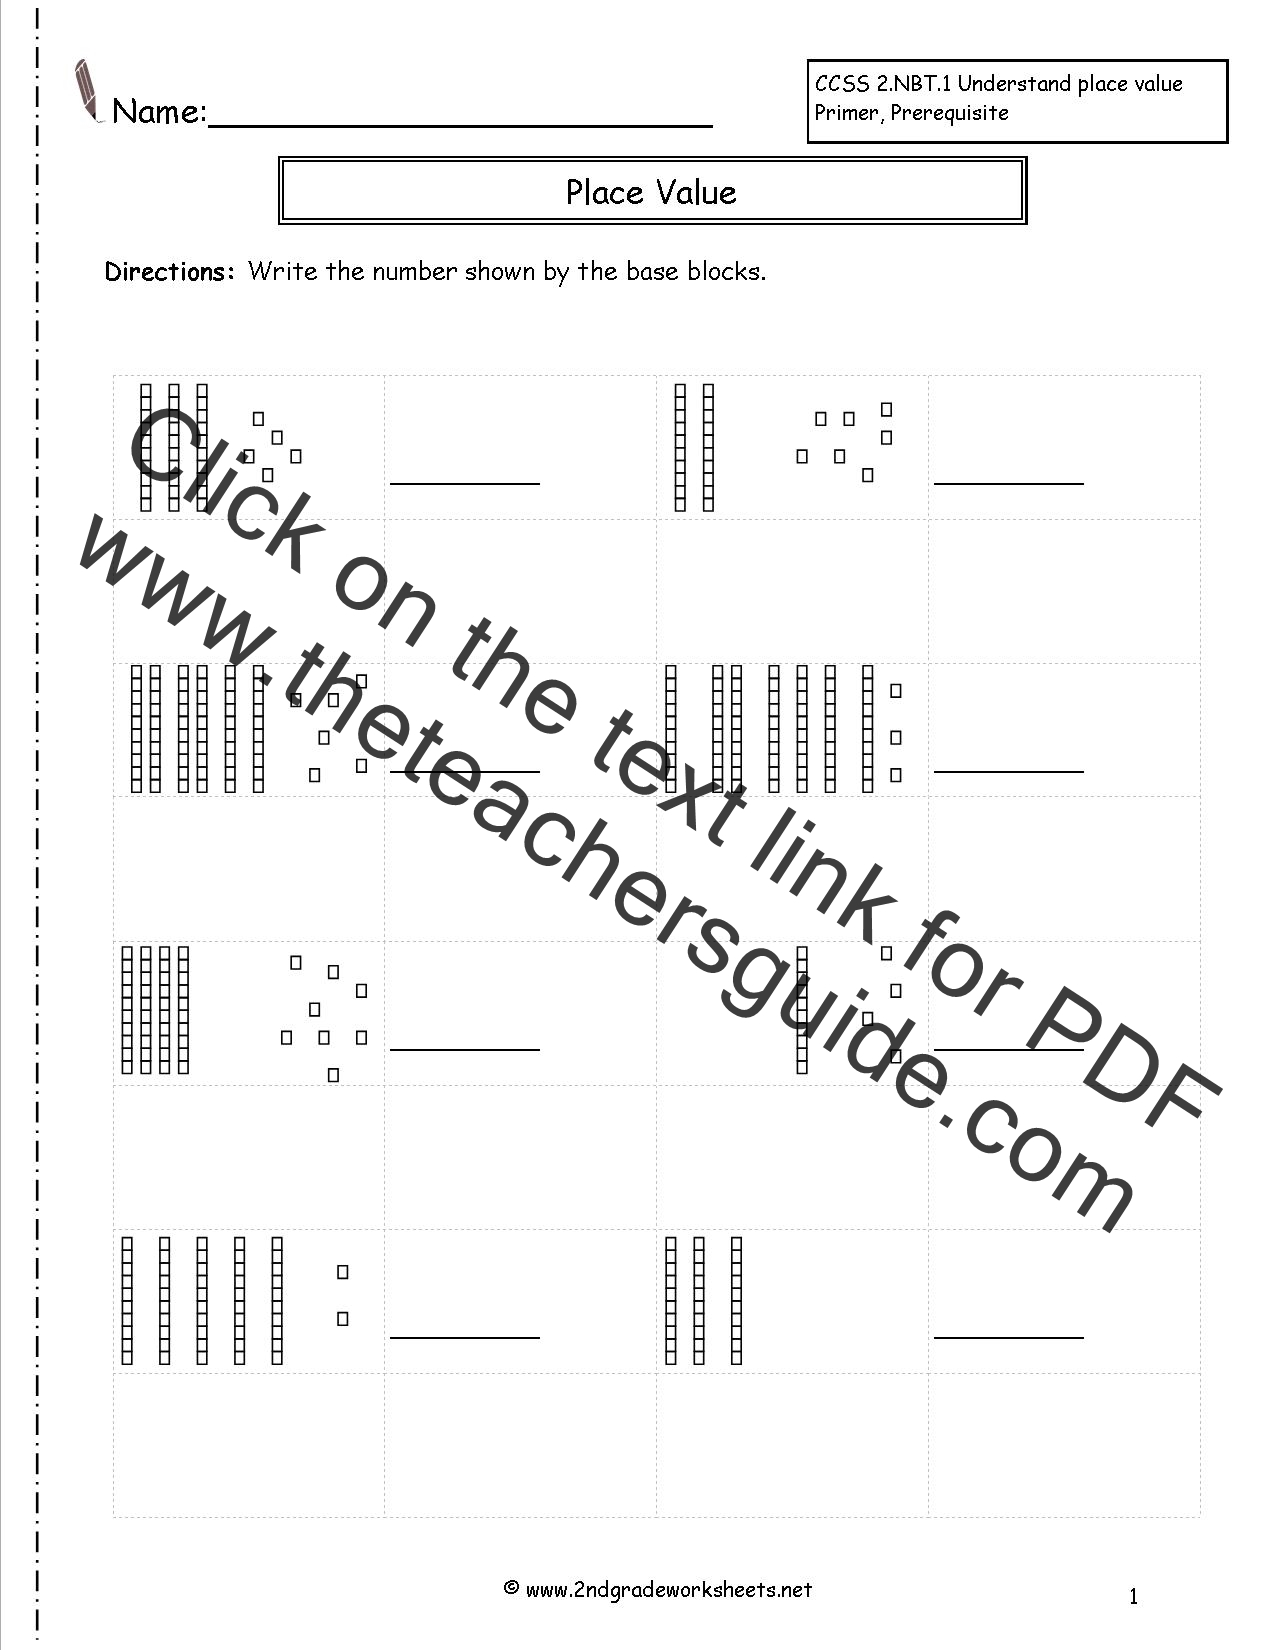 Second Grade Place Value Worksheets – Base Ten Blocks Worksheets